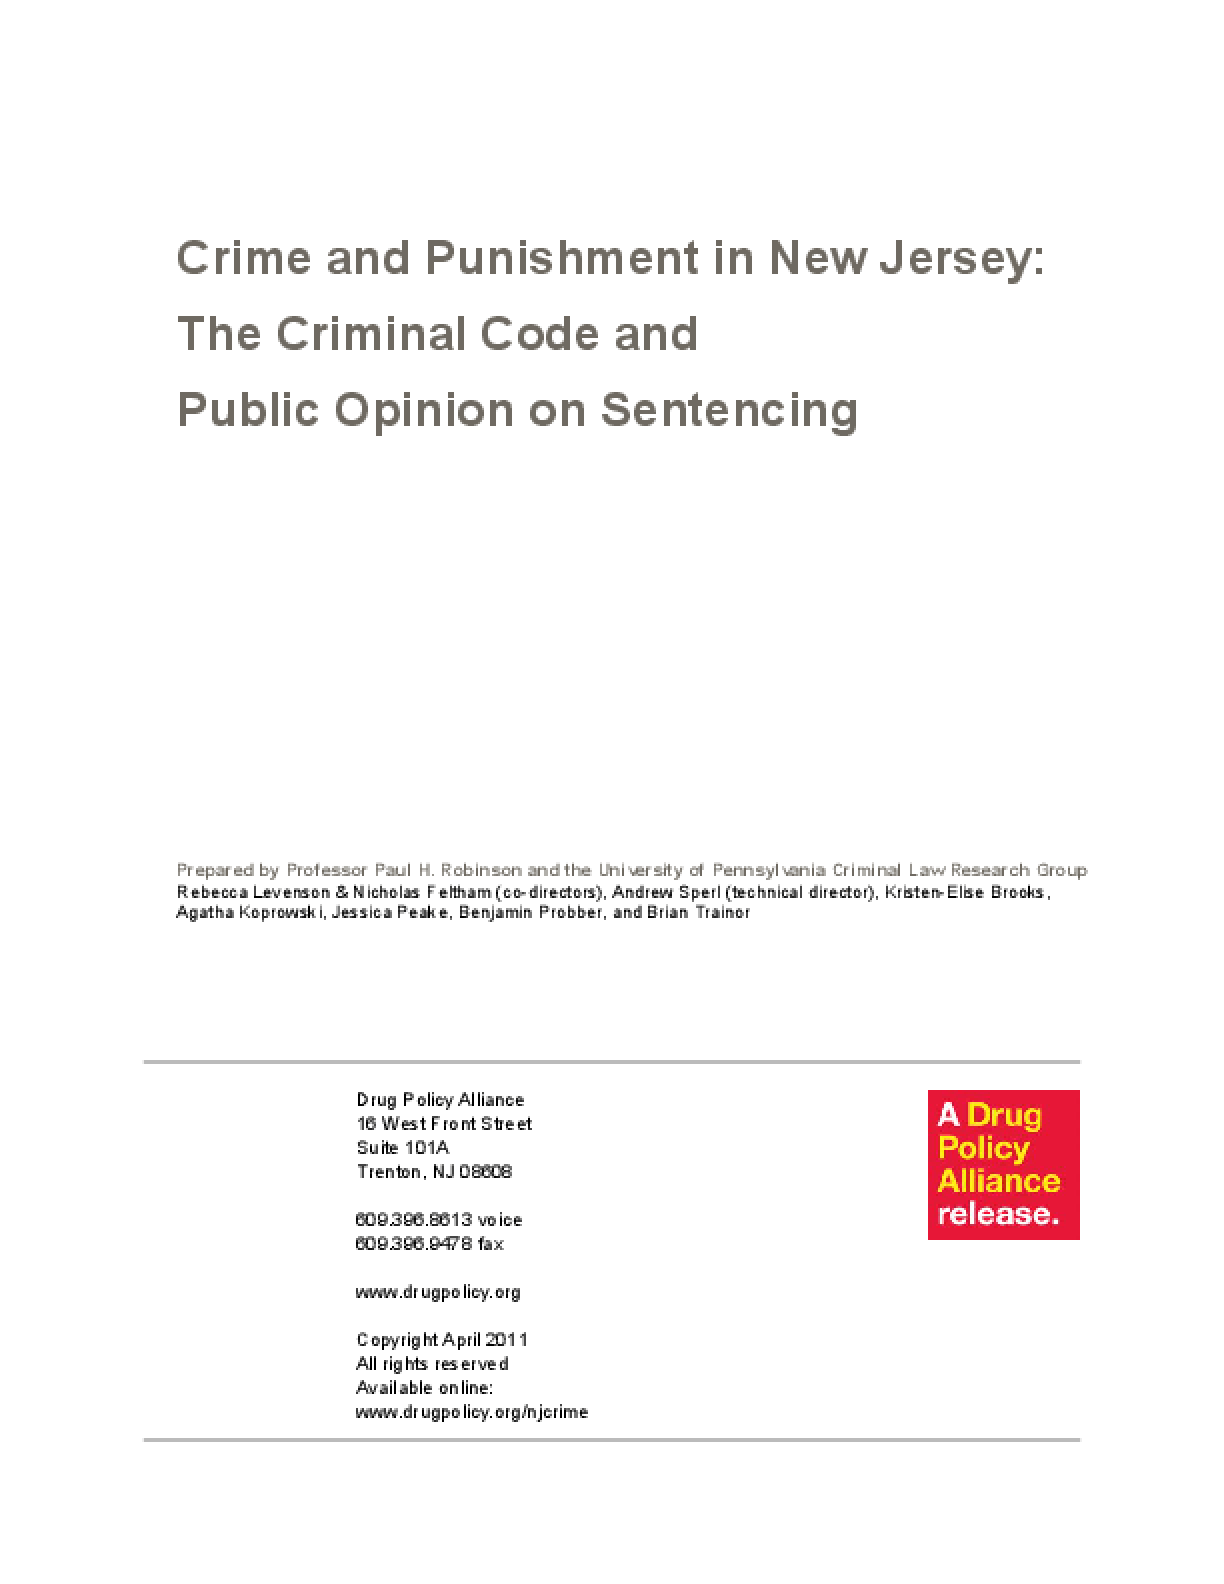 Crime and Punishment in New Jersey: The Criminal Code and Public Opinion on Sentencing